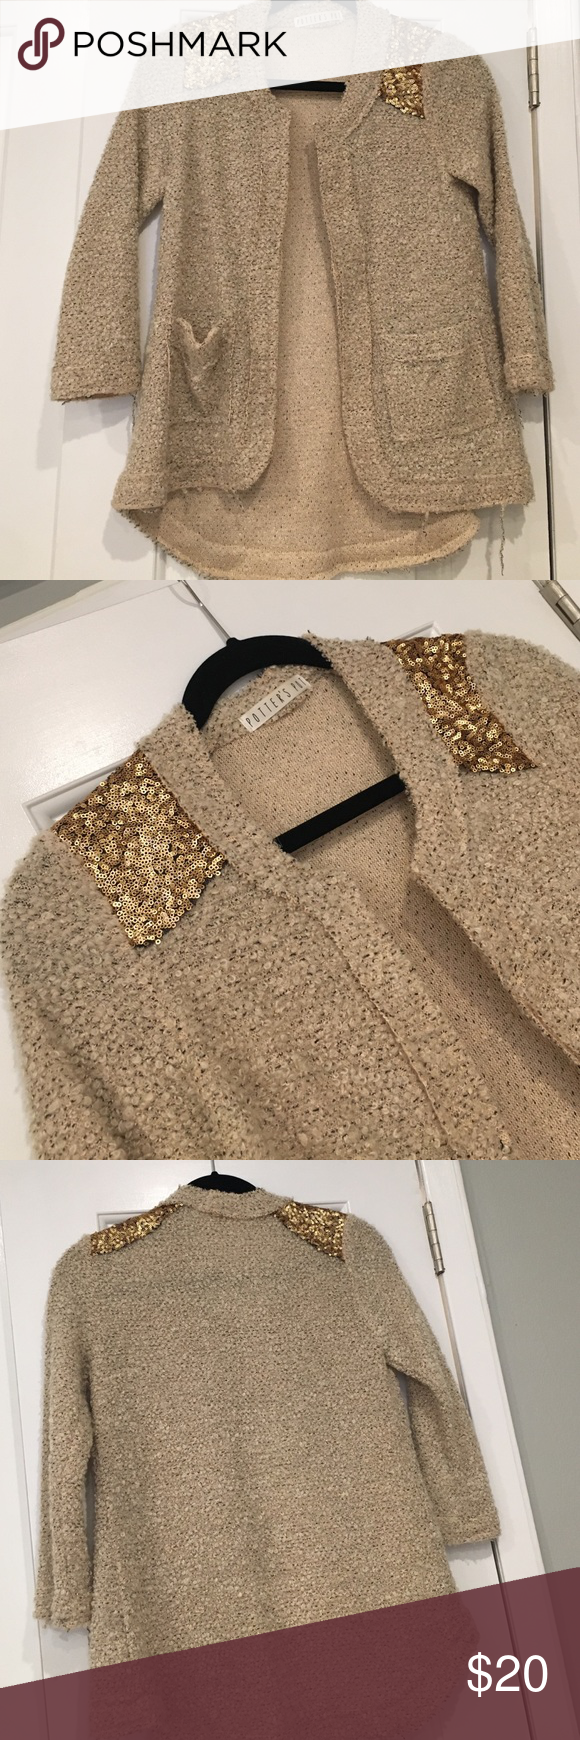 Cozy beige sweater with gold sequin accent Cozy beige sweater with gold sequin accent at shoulders never worn Sweaters Cardigans